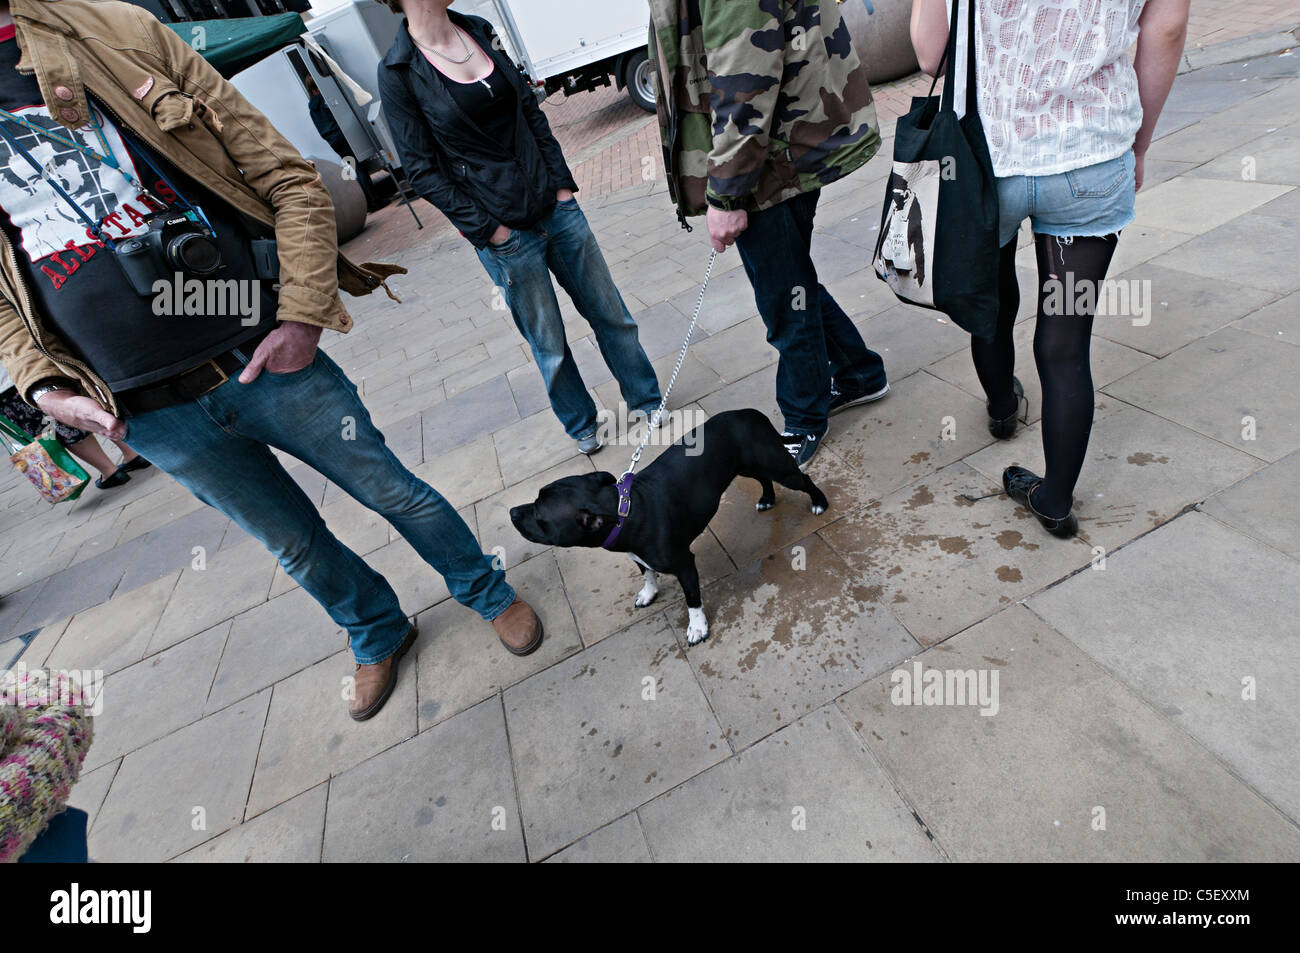 Staffordshire Bull Terrier dog with group standing in street - Stock Image